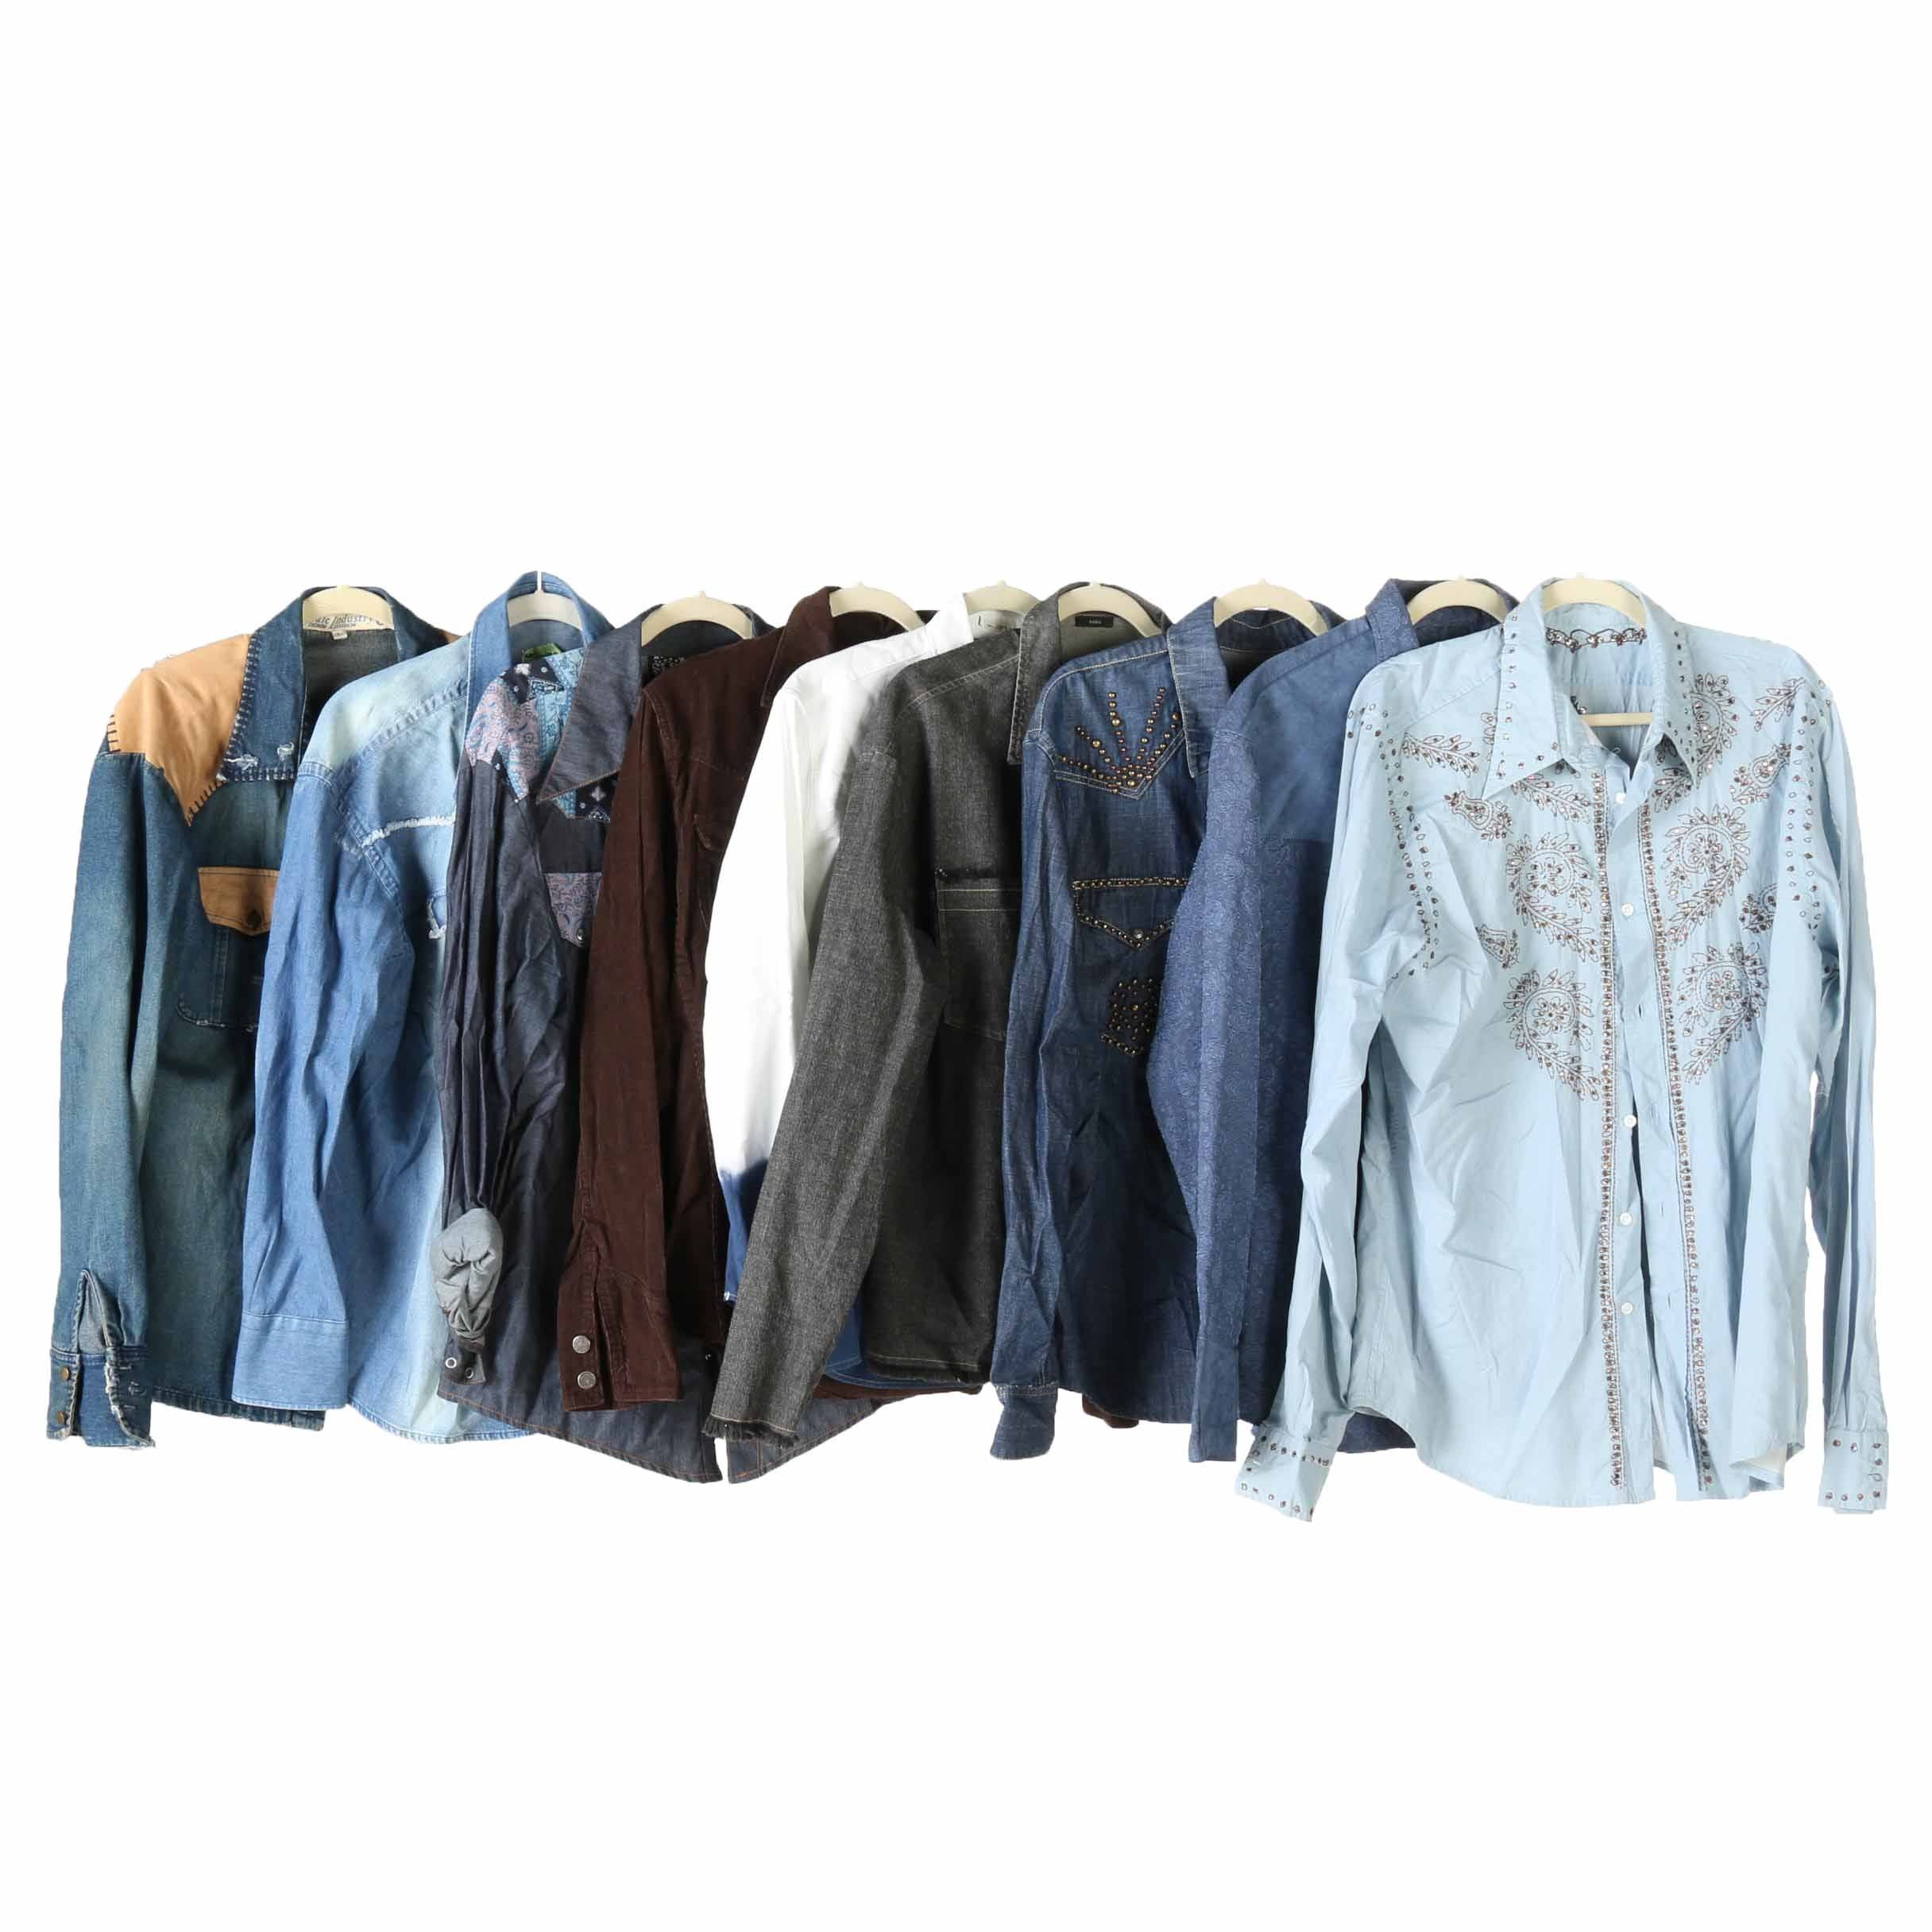 Men's Embellished and Button Up Shirts